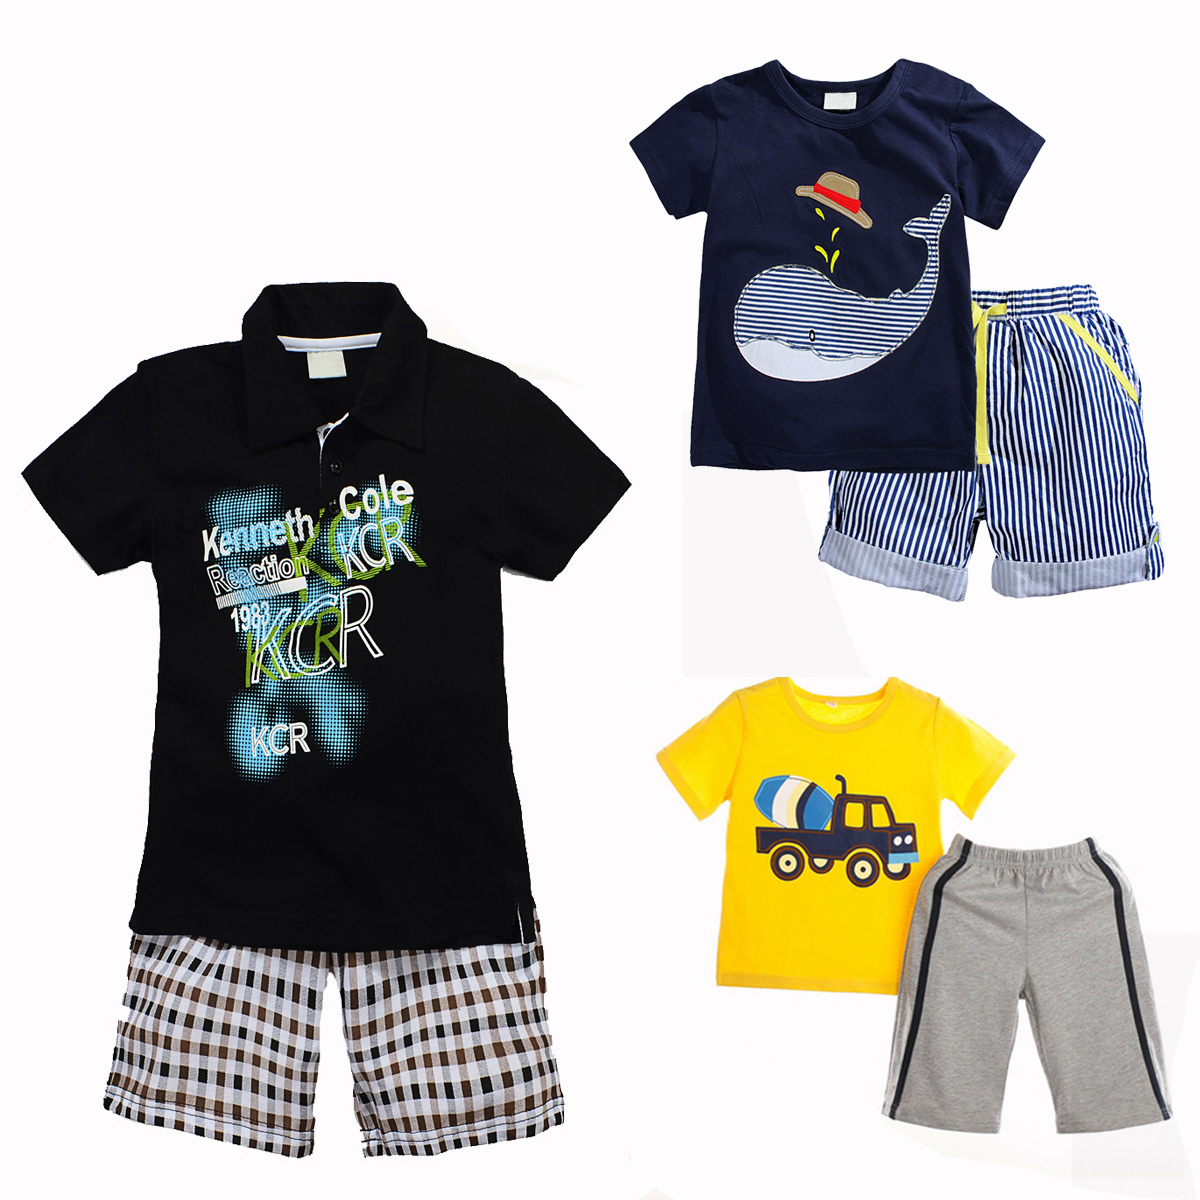 New 2017 Kids Boy Summer Set Cotton Shorts + T Shirt Children Boys Clothing Baby Boy T Shirt Set Sports Suit Child Kids Clothes